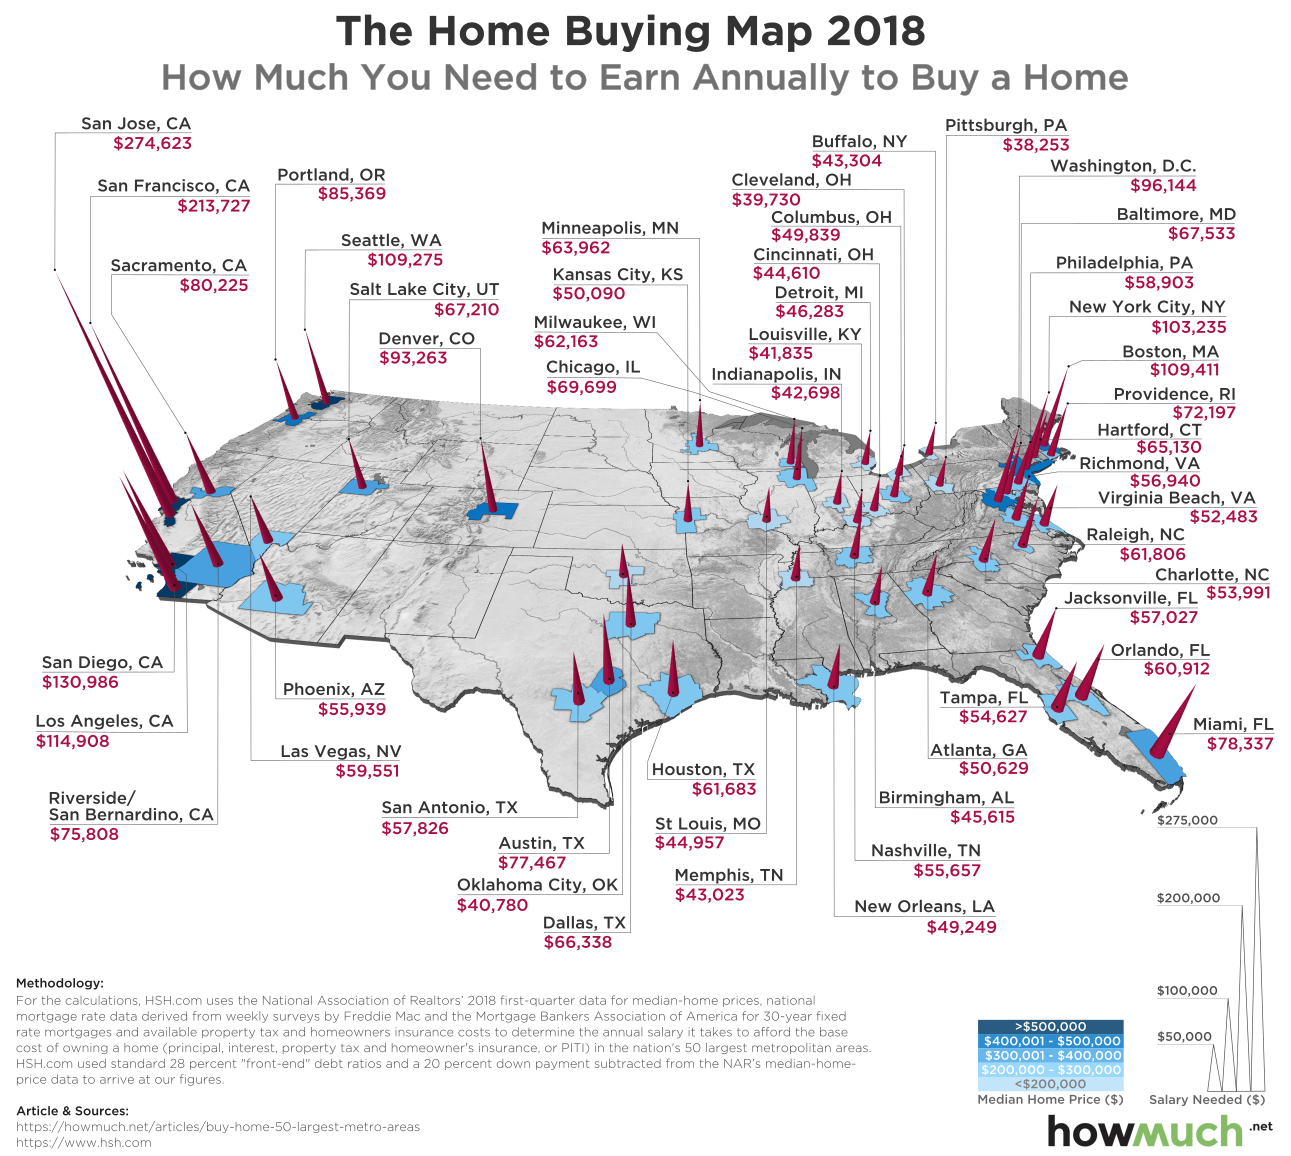 How Much You Must Earn to Afford a House in the 50 Largest